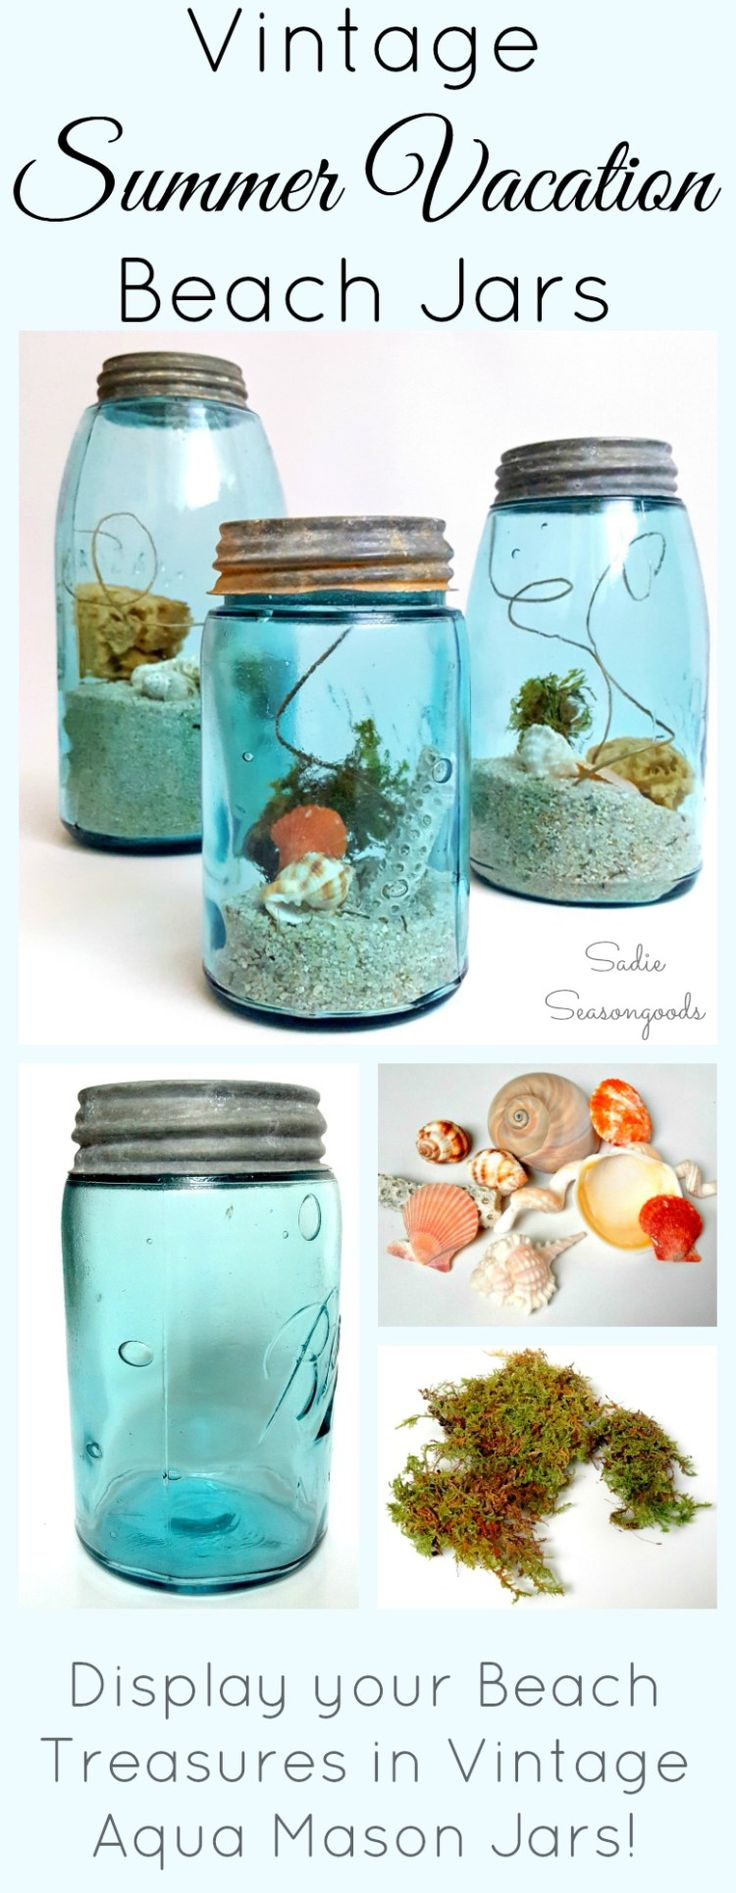 Create gorgeous DIY coastal decor by filling vintage (or new) aqua mason jars with treasures from your summer beach vacation- sand, shells, coral, etc. And from the craft store, you can add reindeer moss and dried grasses to add even more beach-delight! Fun repurposing craft project from #SadieSeasongoods / www.sadieseasongoods.com